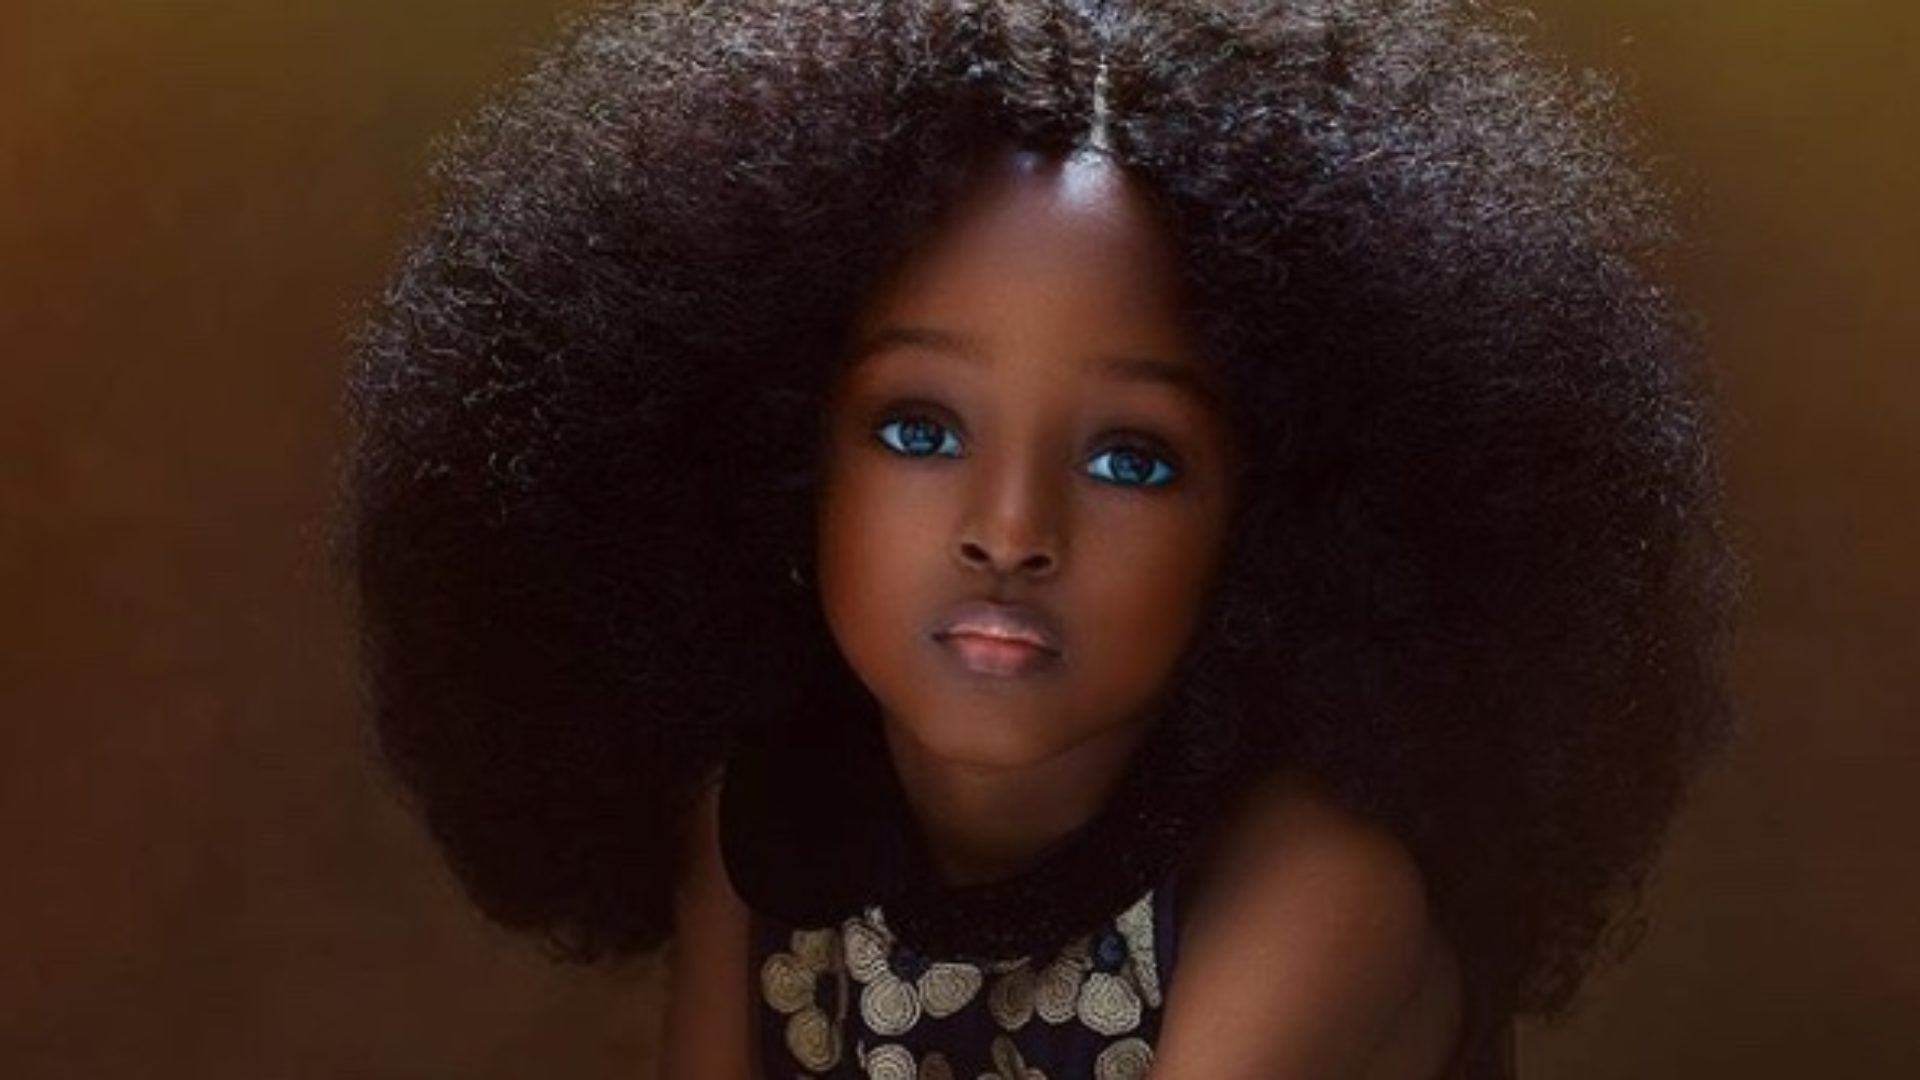 Nigerian 5-Year-Old's Photo Goes Viral, Labeled Most Beautiful Girl In The World